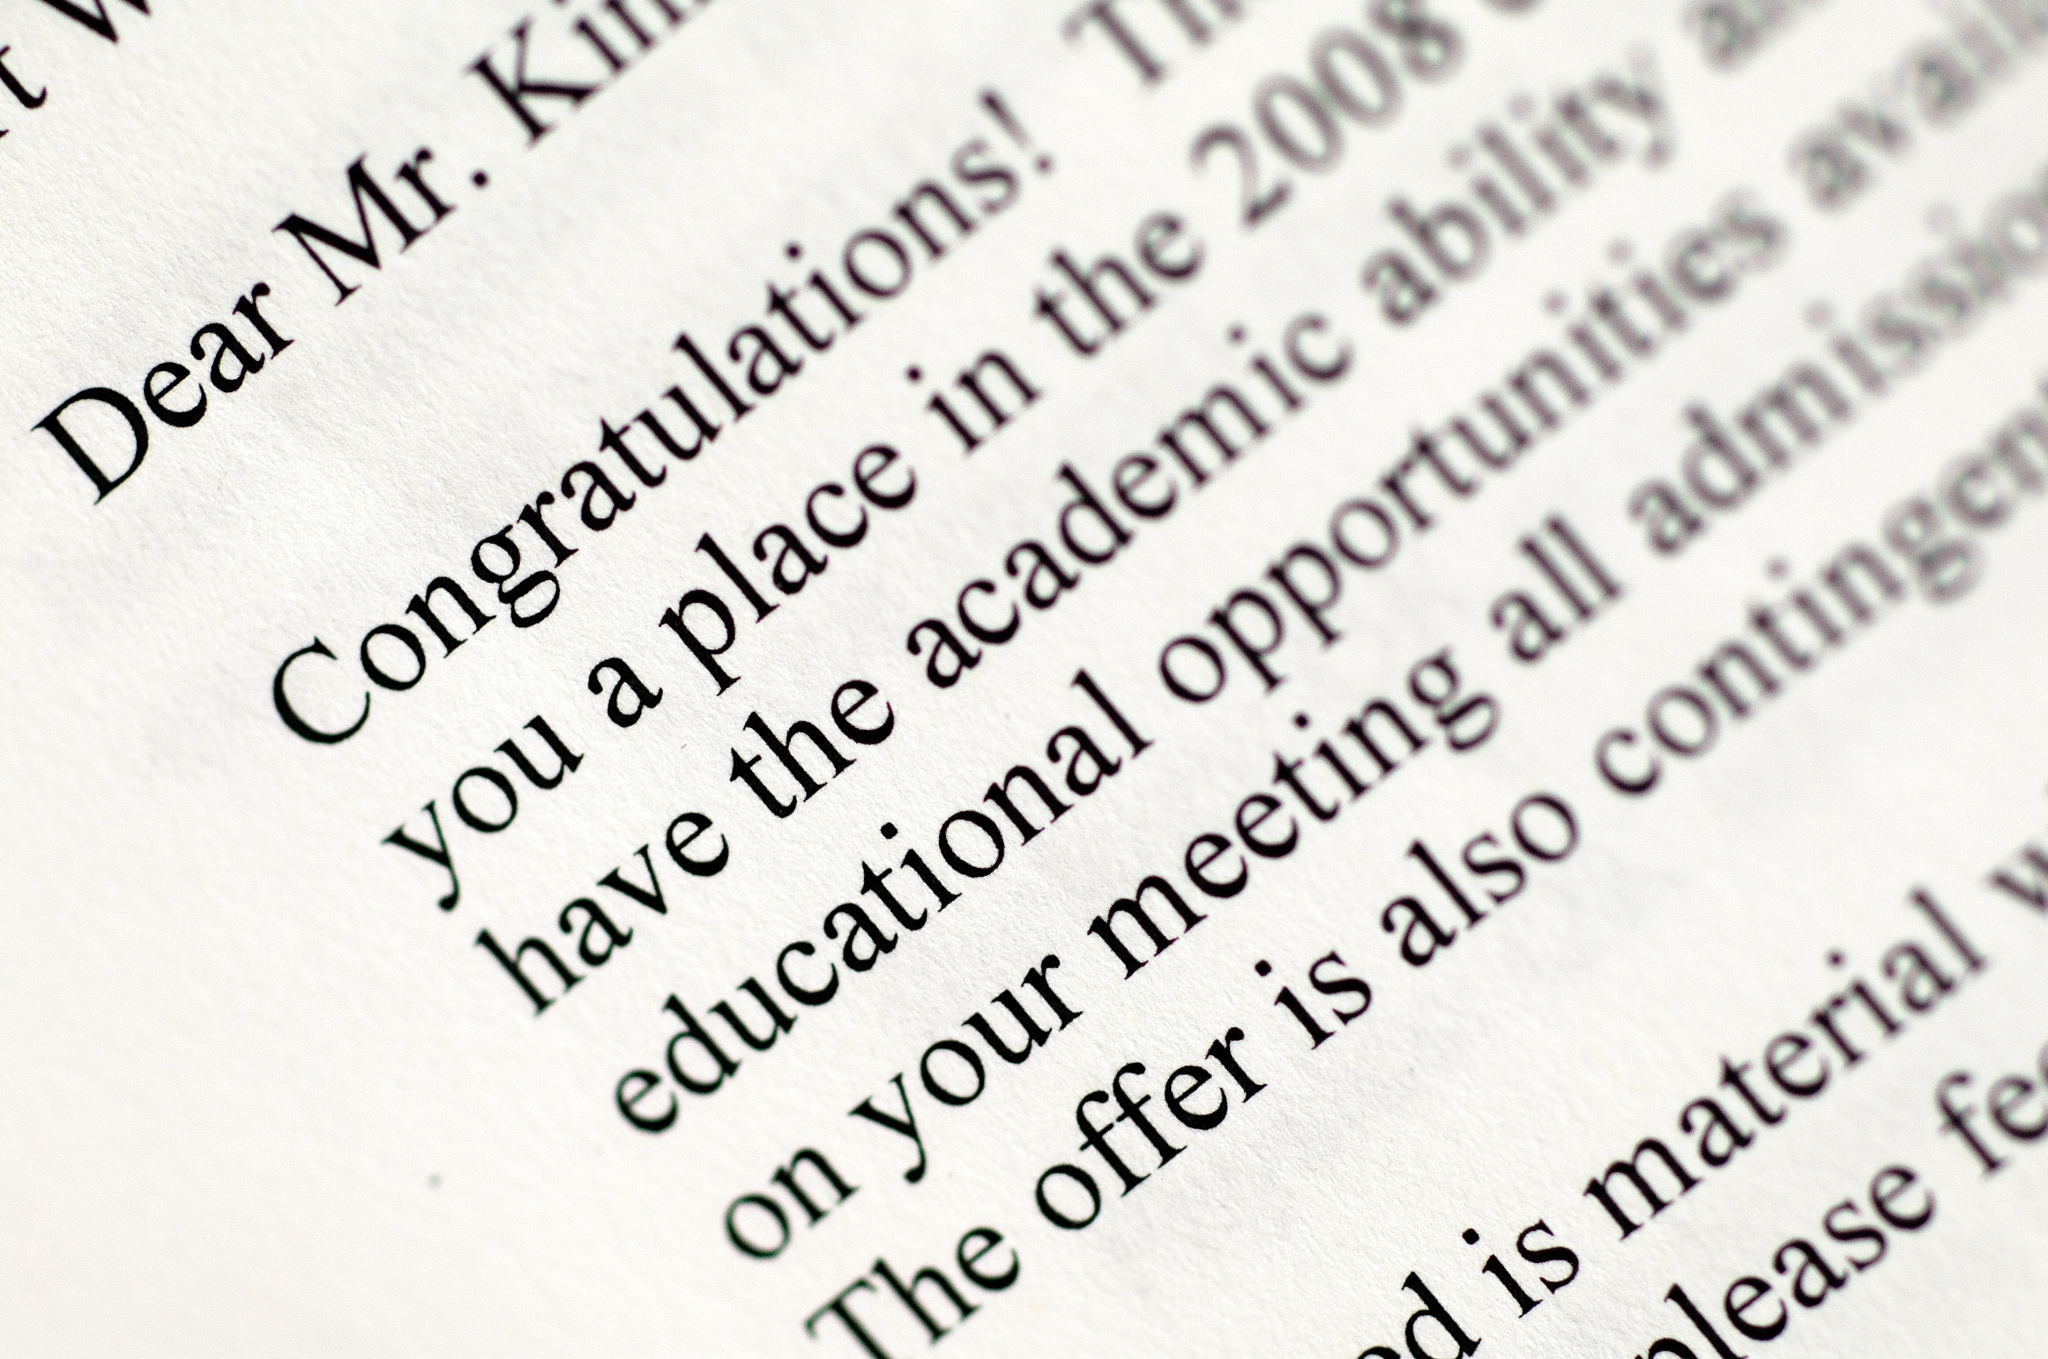 acceptance letter thefirstchild has been accepted to medical school